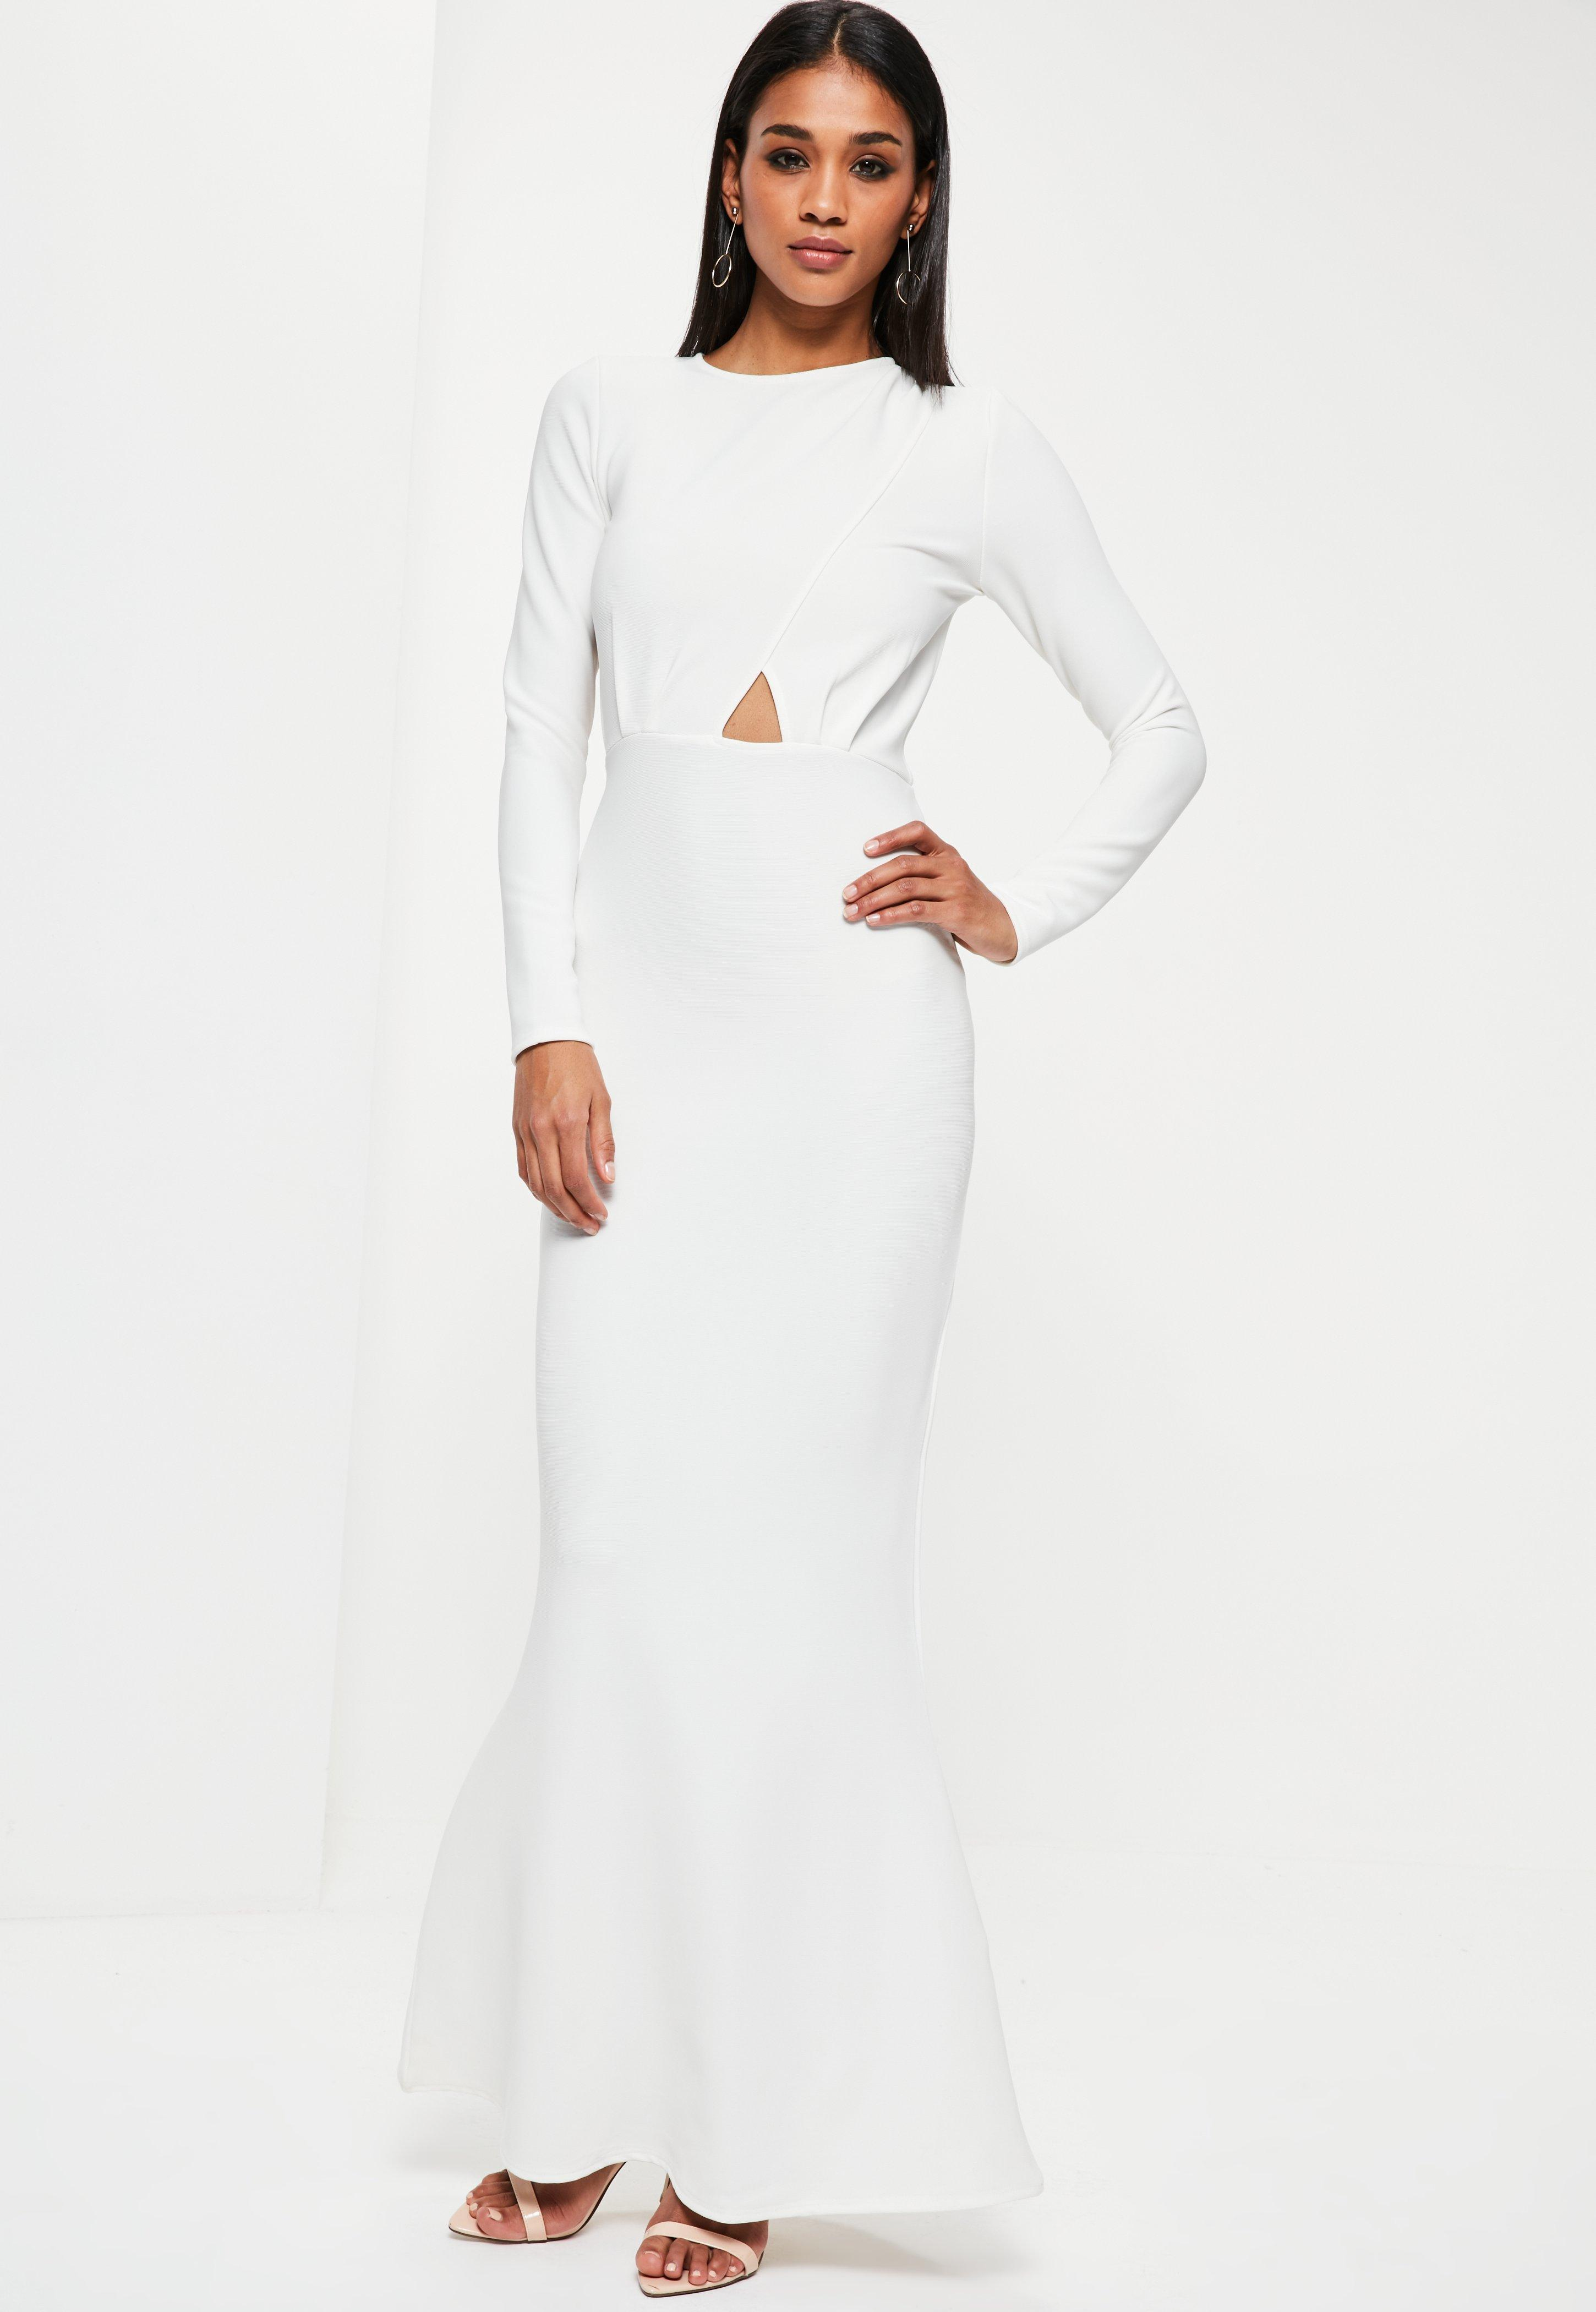 Wedding White Long Sleeve Dress white long sleeve backless maxi dress missguided previous next